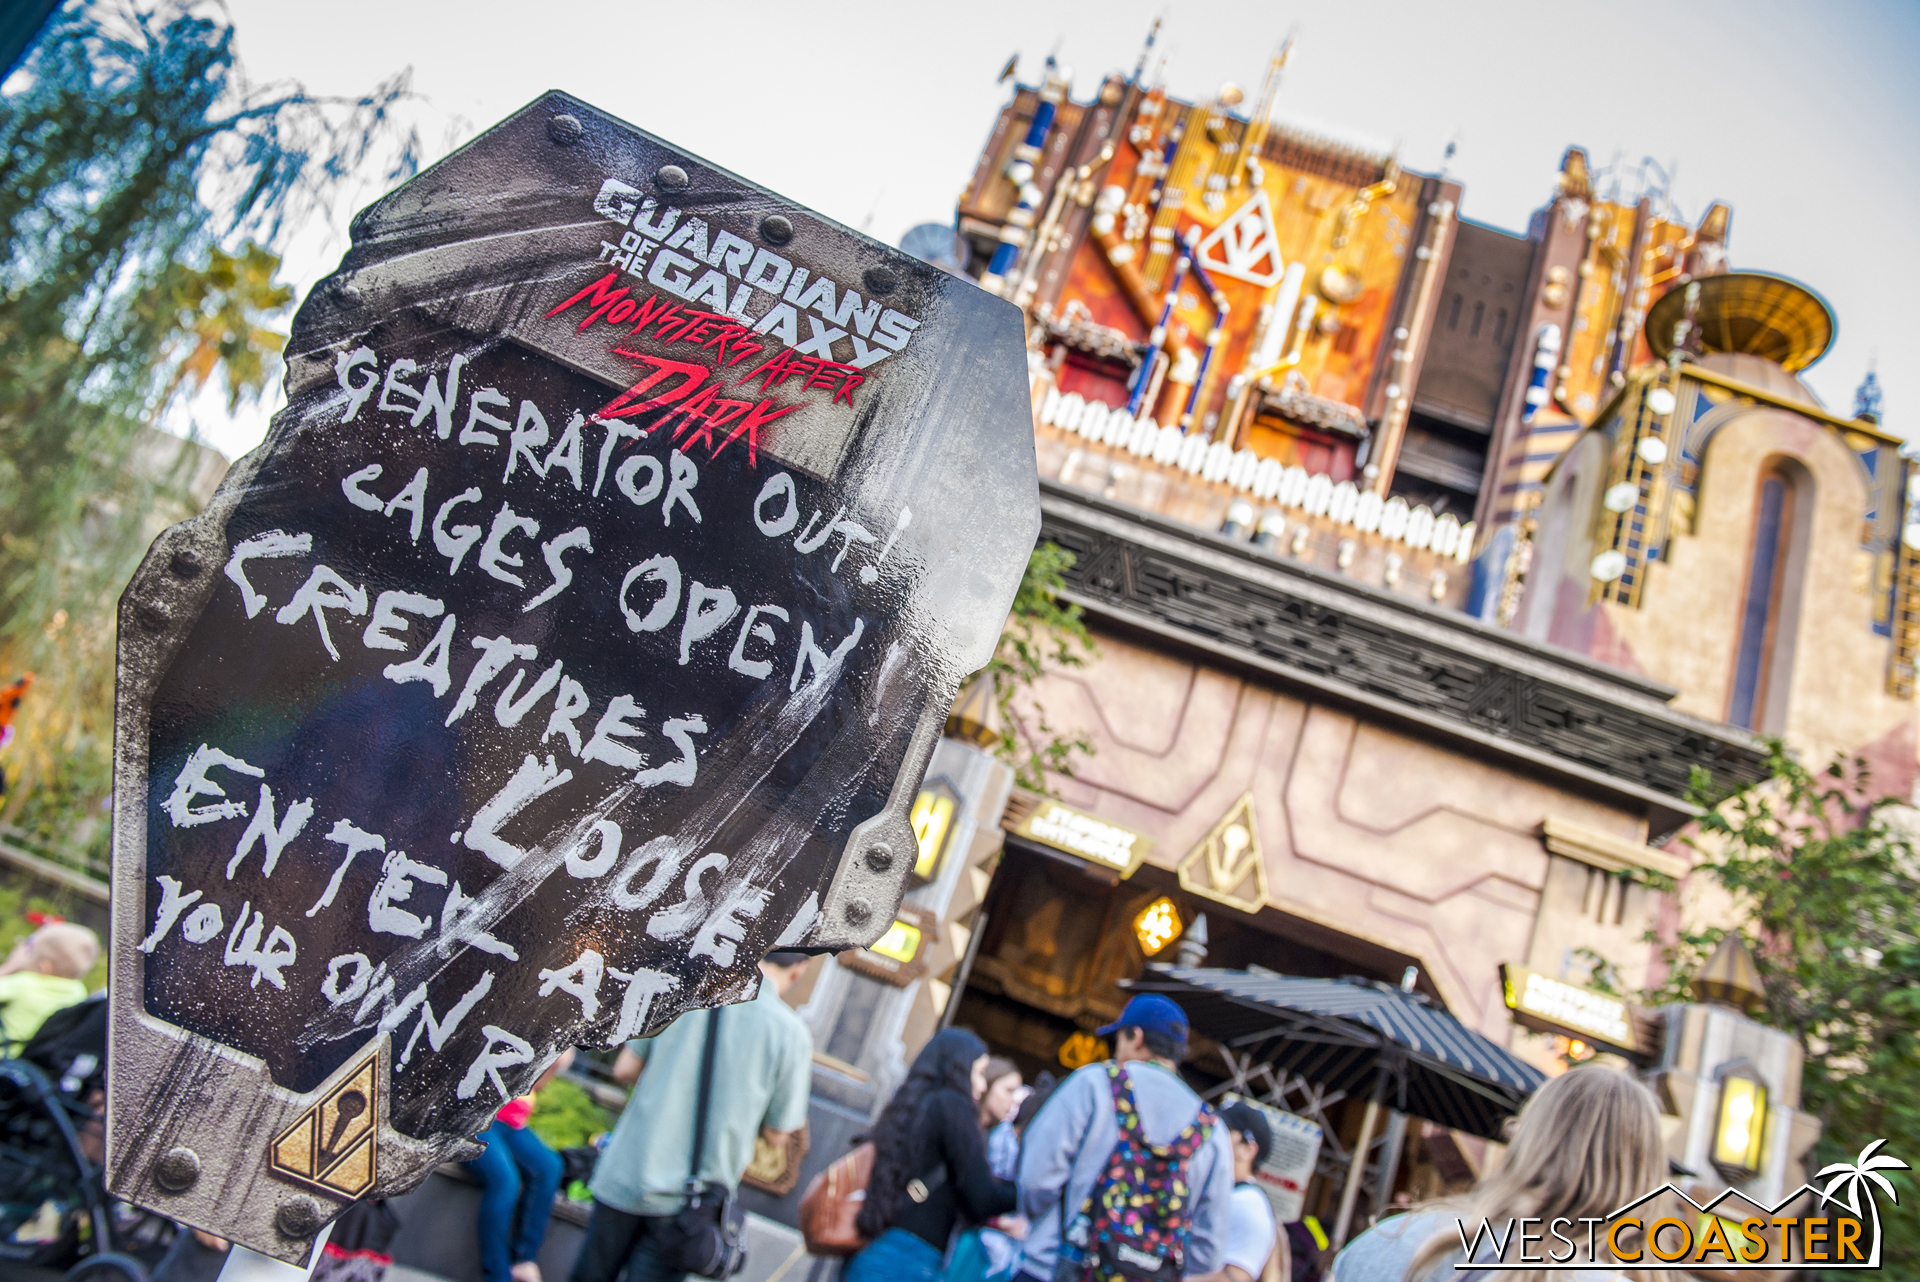 By late afternoon, though, the Guardians of the Galaxy ride was transformed by a sinister Halloween overlay.